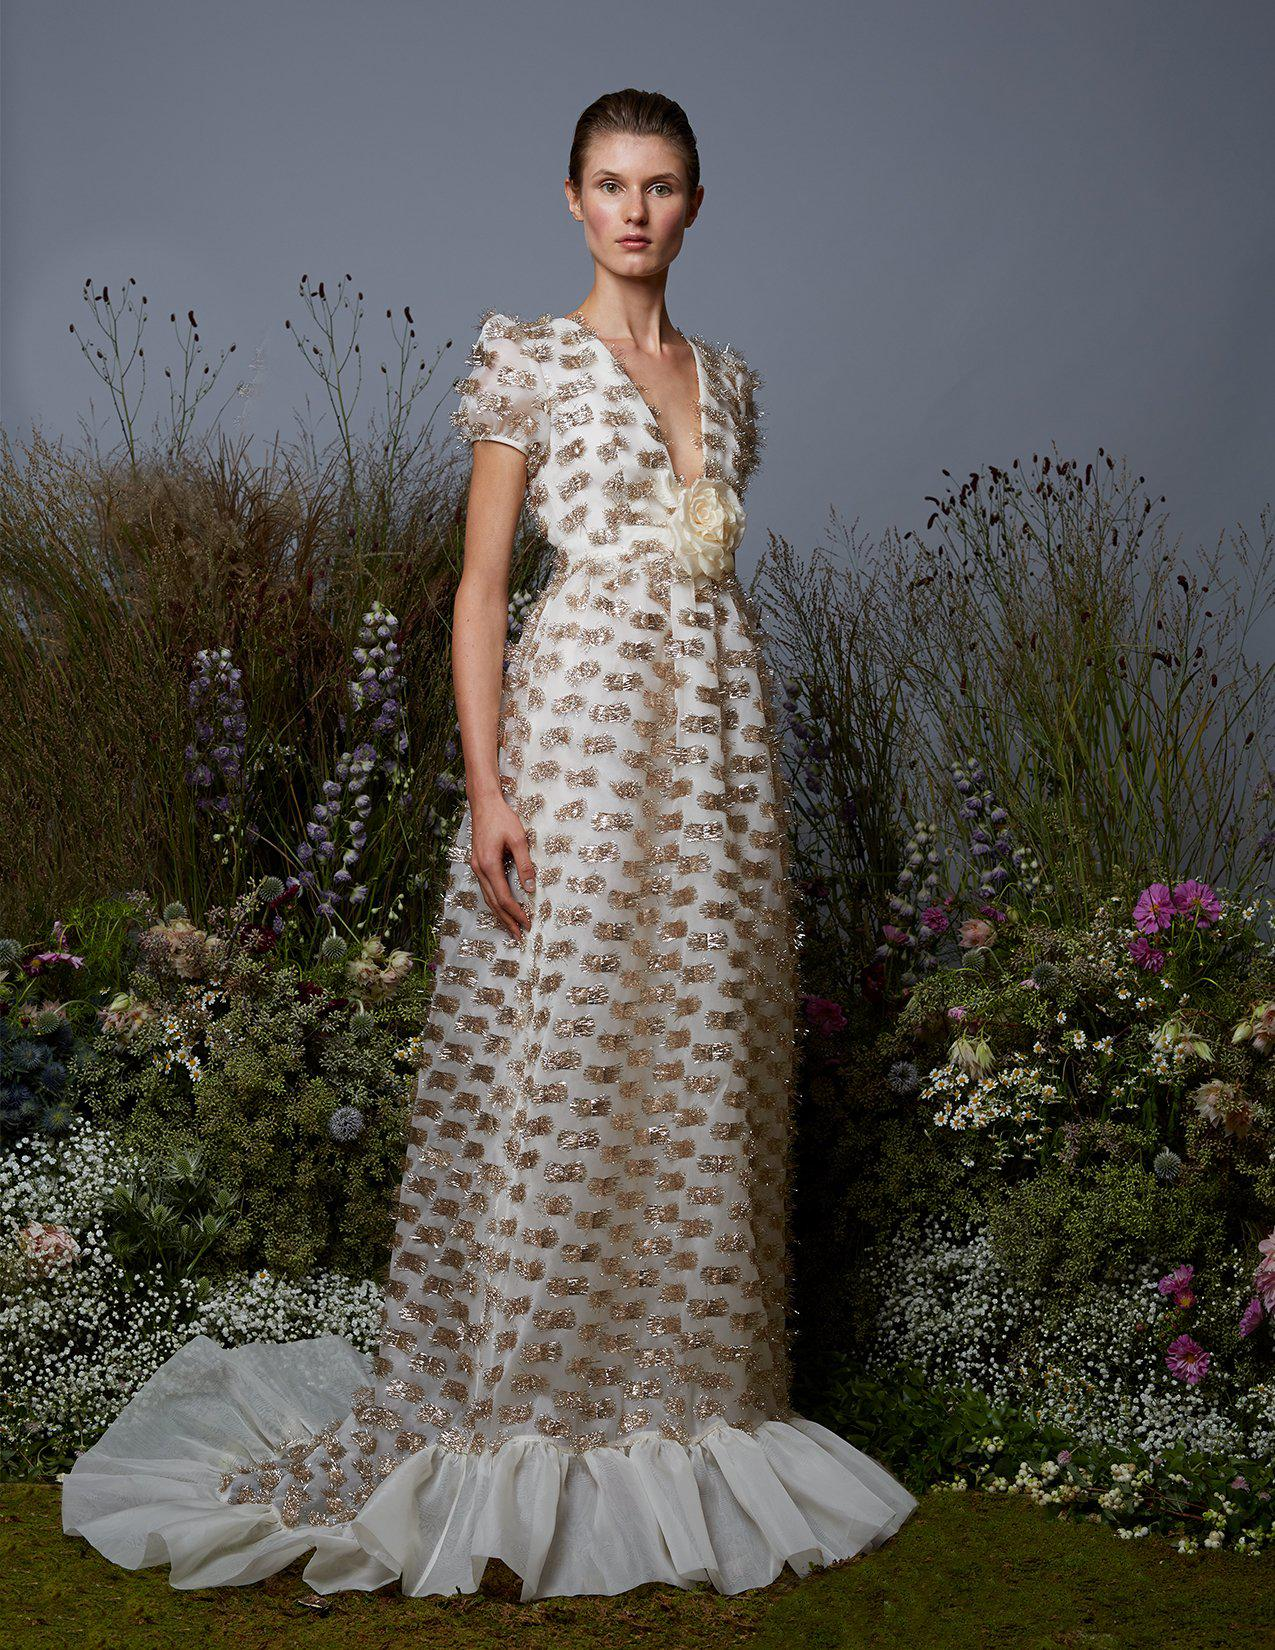 Forget Me Not White and Gold Gown